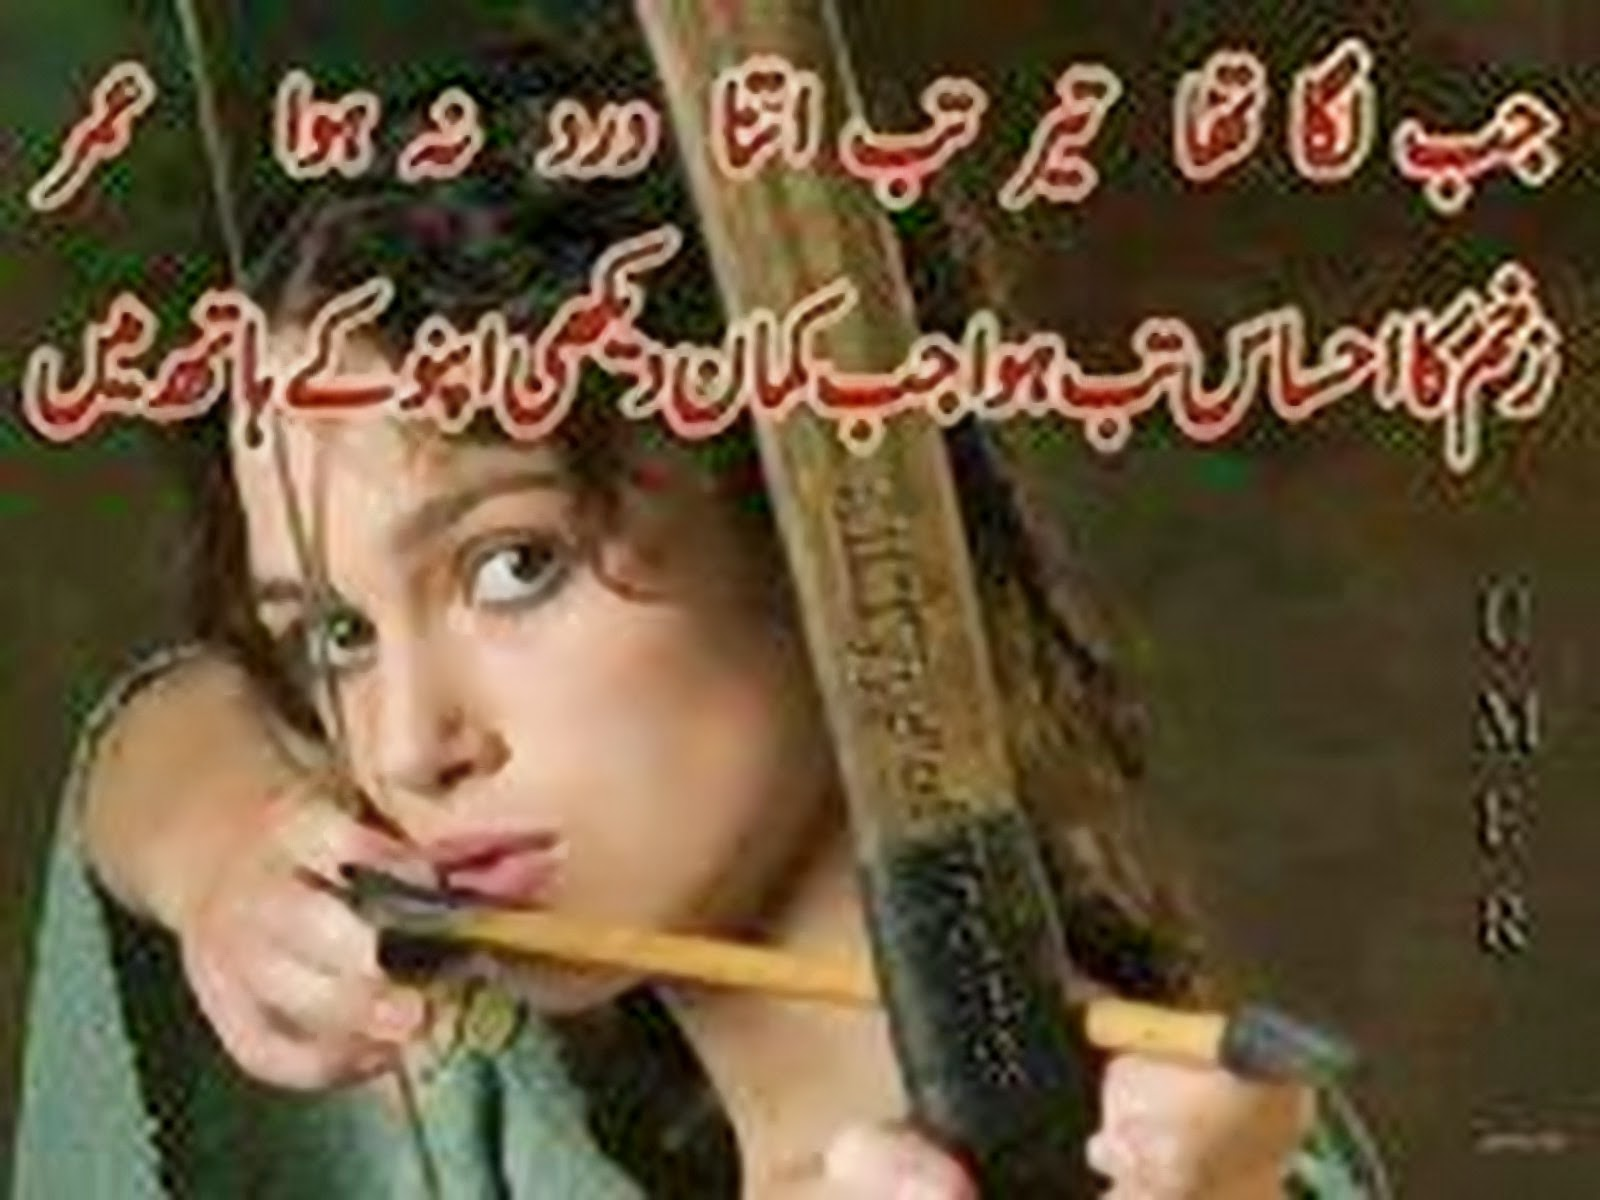 Mobile Wallpaper Quotes On Attitude Online Wallpapers Ahmed Faraz 2 Lines Urdu Poetry